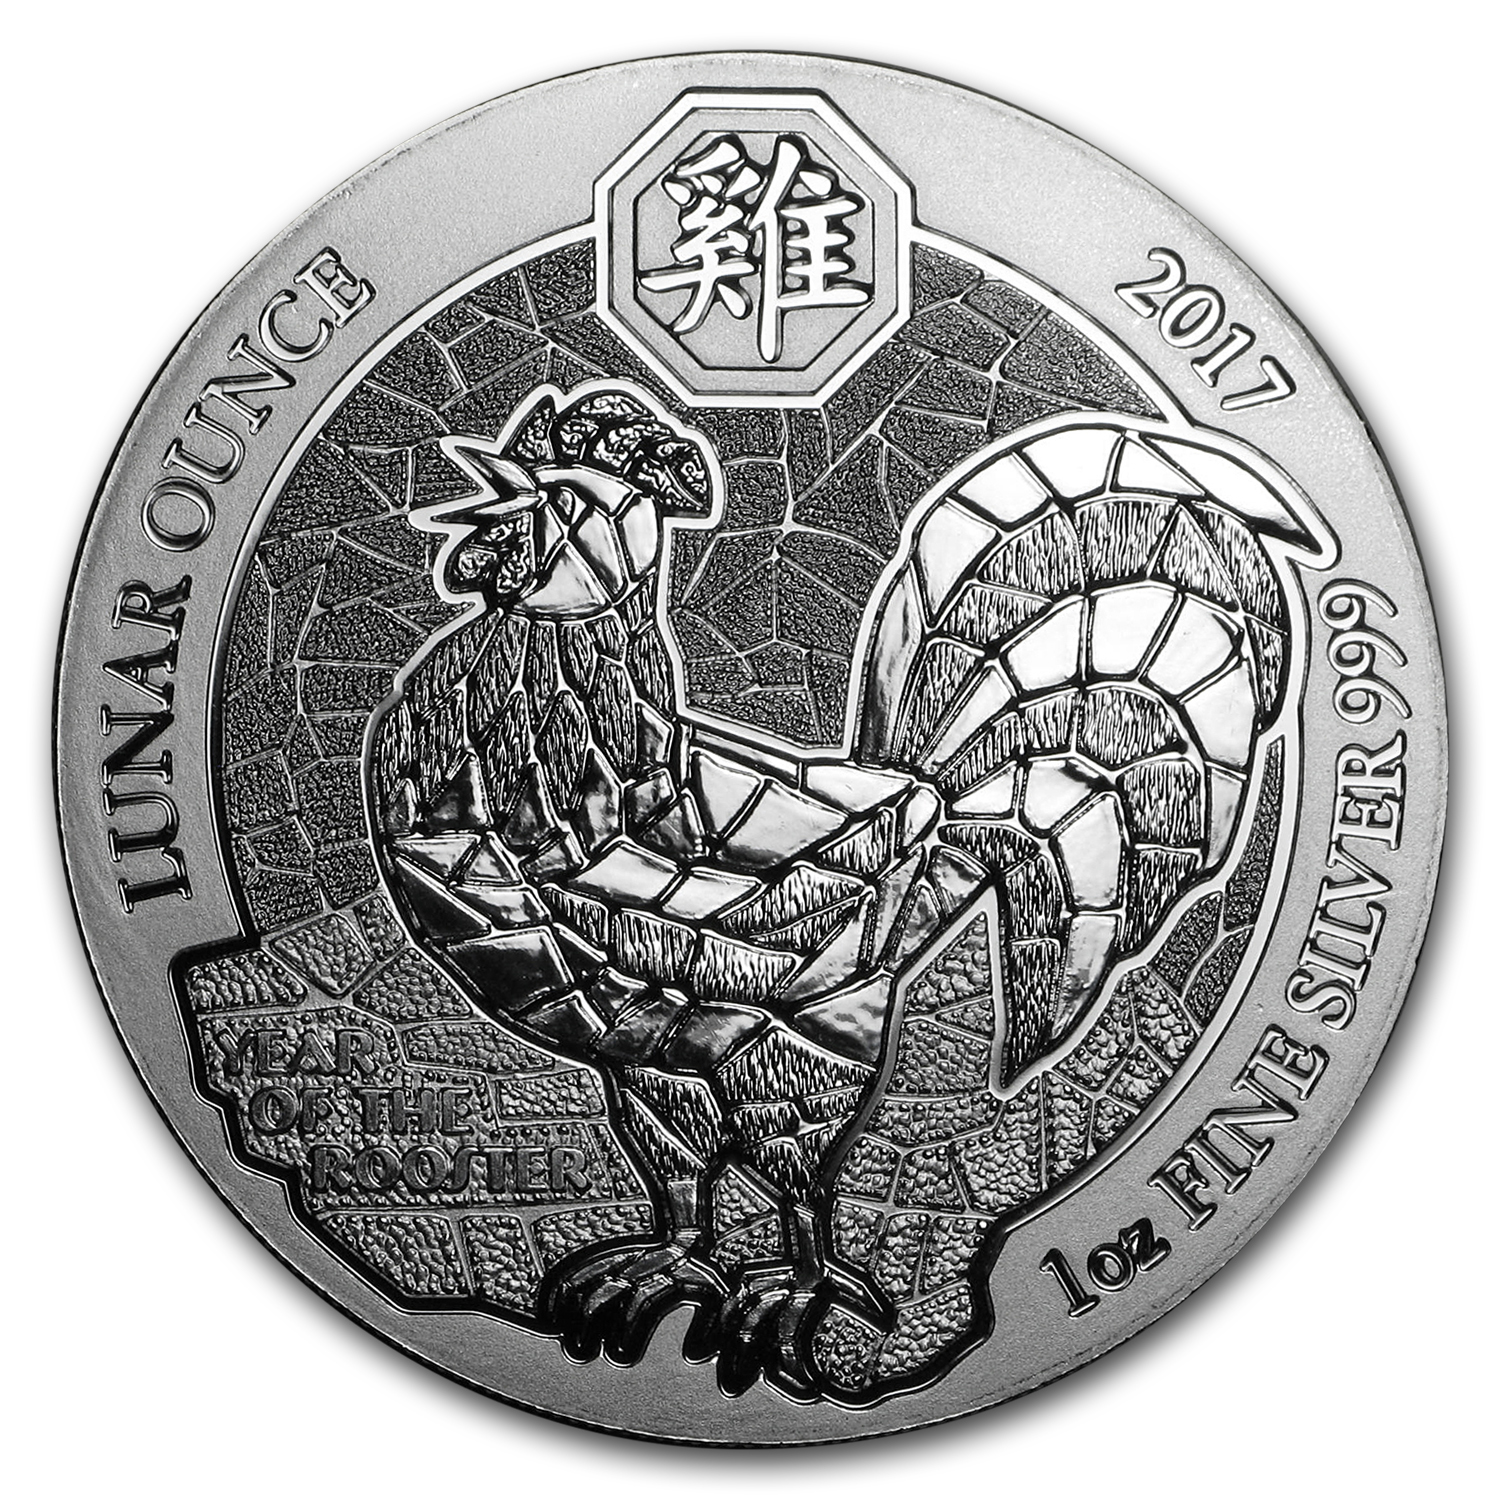 2017 Rwanda 1 oz Silver Lunar Year of the Rooster BU